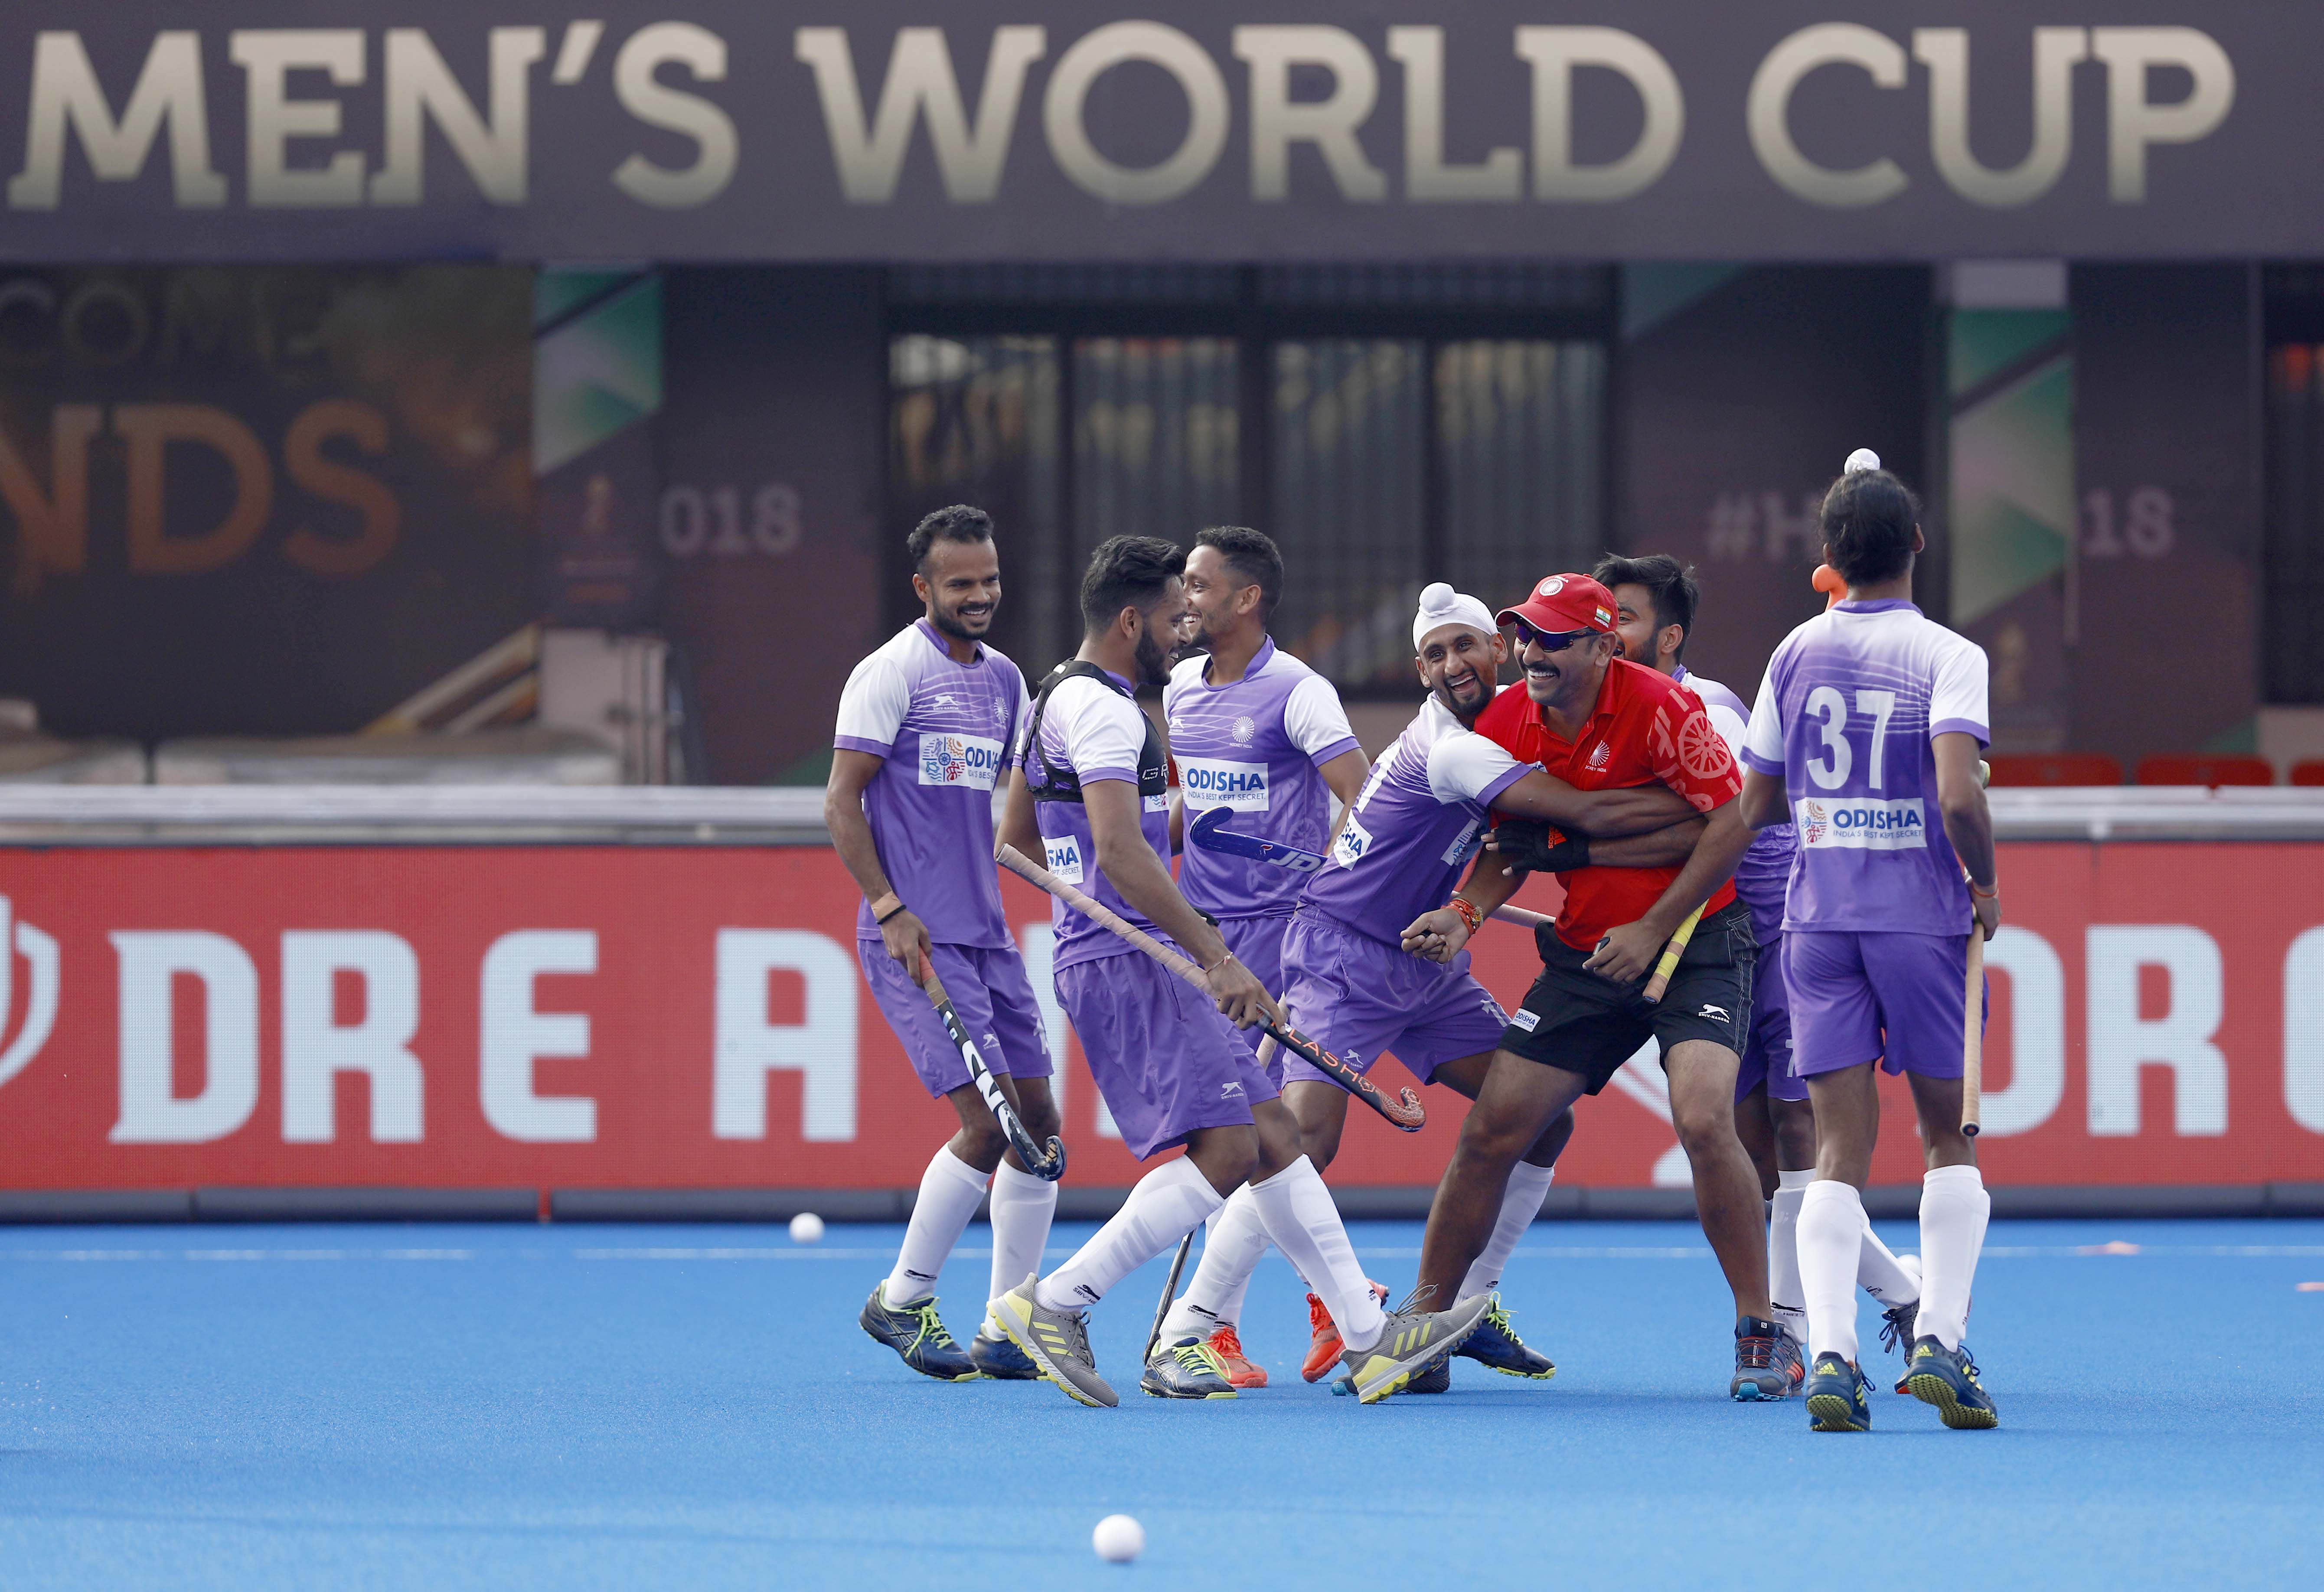 Indian men's hockey team players with coach Harendra Singh